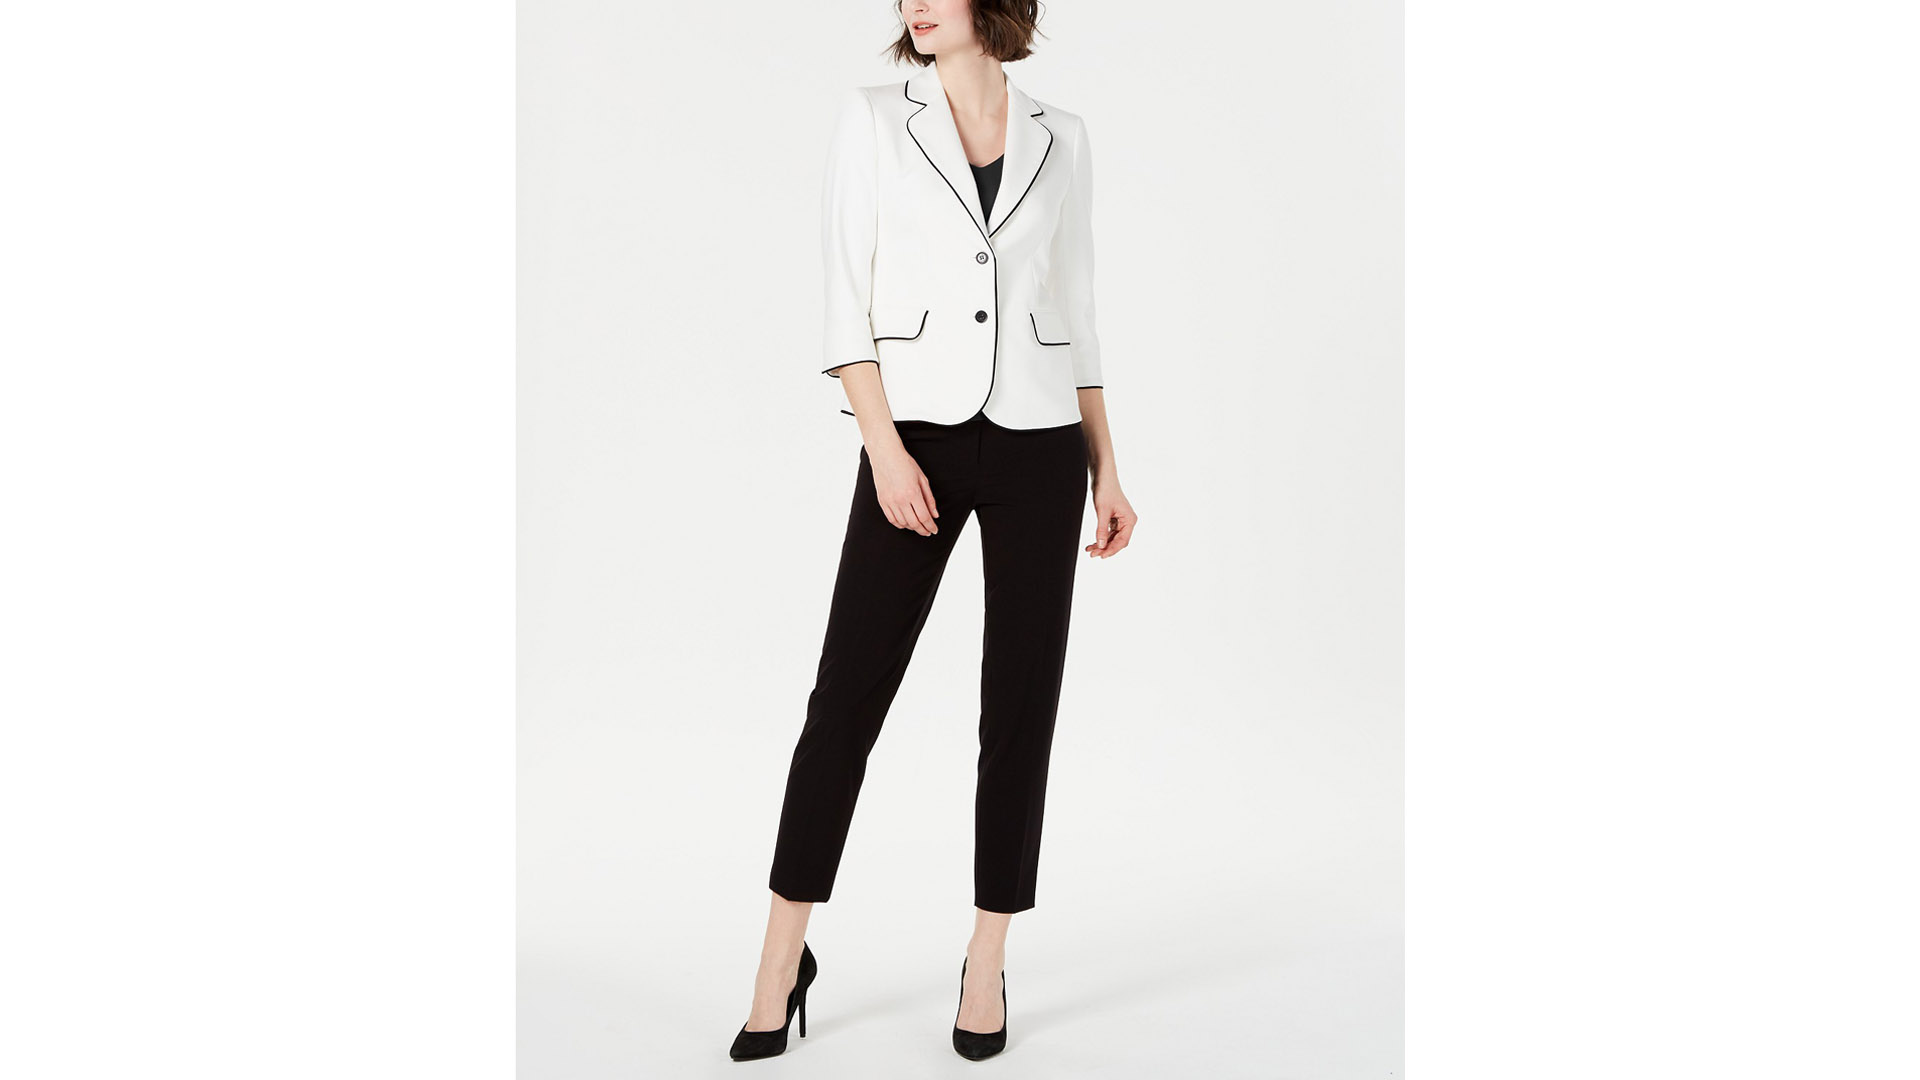 Separated Suit 25% OFF Is One Of The Best Macy's Deals To Mother's Day